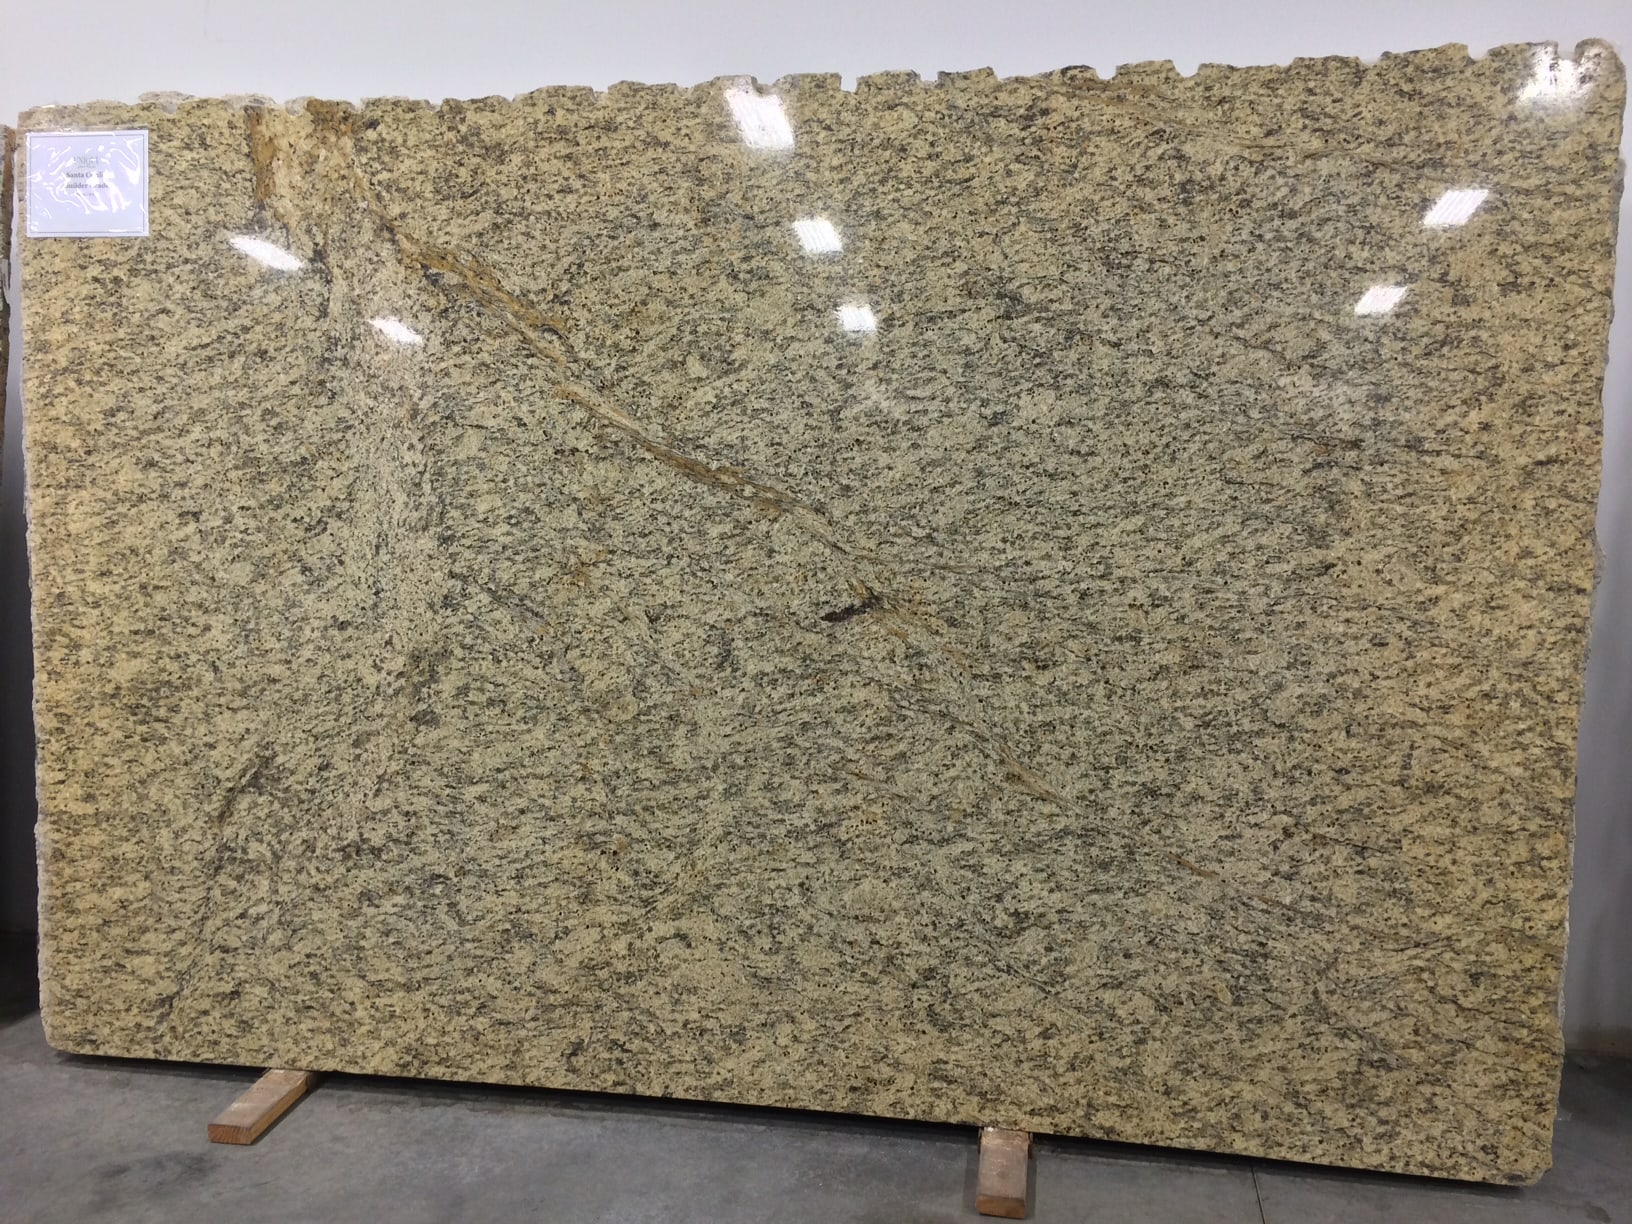 styles cecilia countertops for matching pictures countertop concept santa st imgid awesome light granite and j